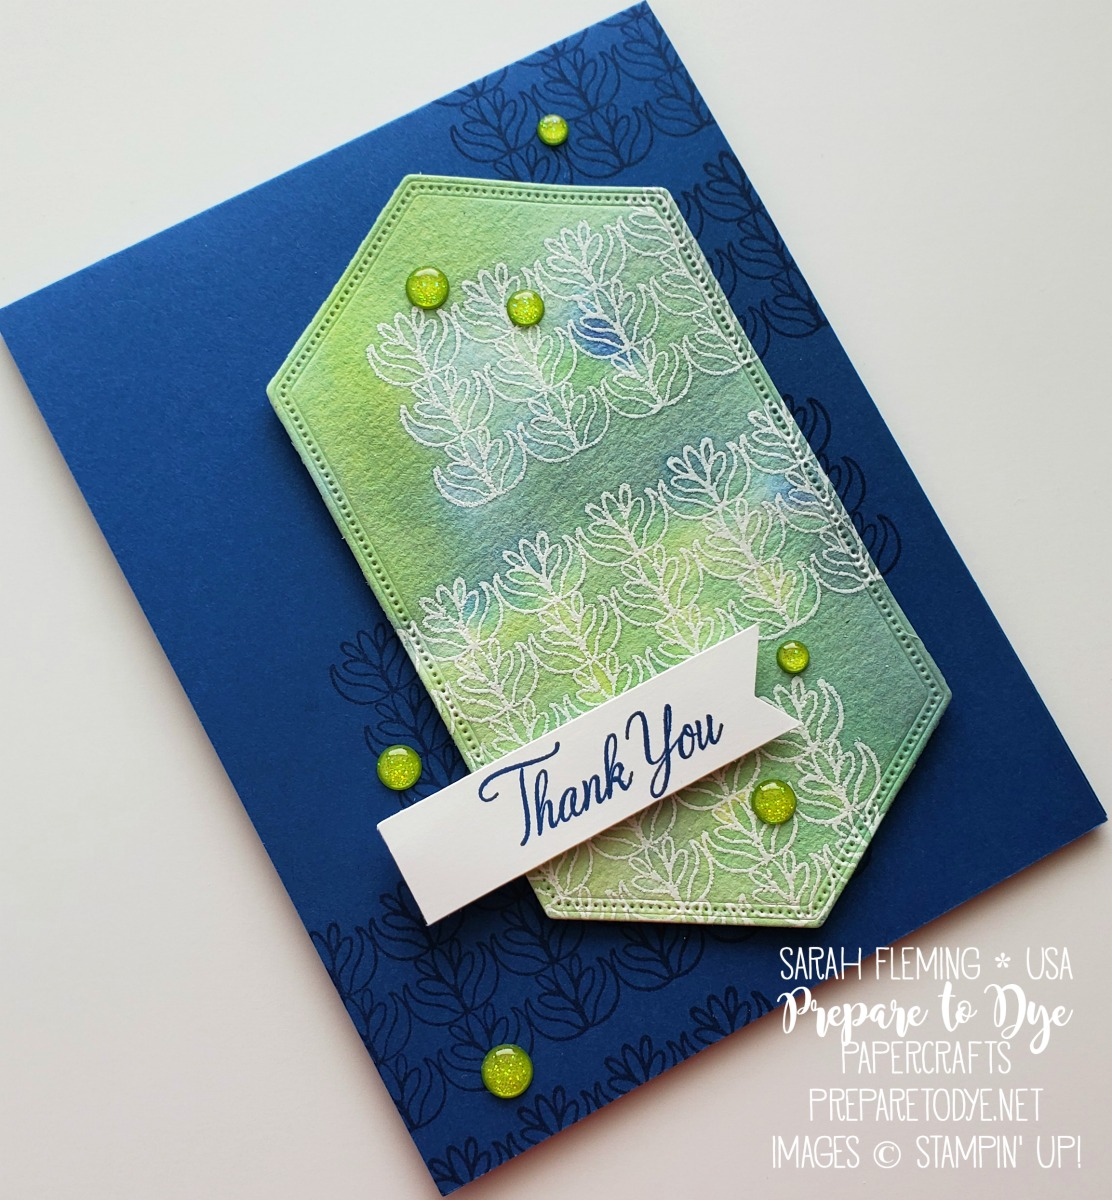 Stampin' Up! handmade thank you card using Parcels & Petals stamp set, watercolor emboss resist - masculine card - Stitched Nested Labels dies - Sarah Fleming - Prepare to Dye Papercrafts